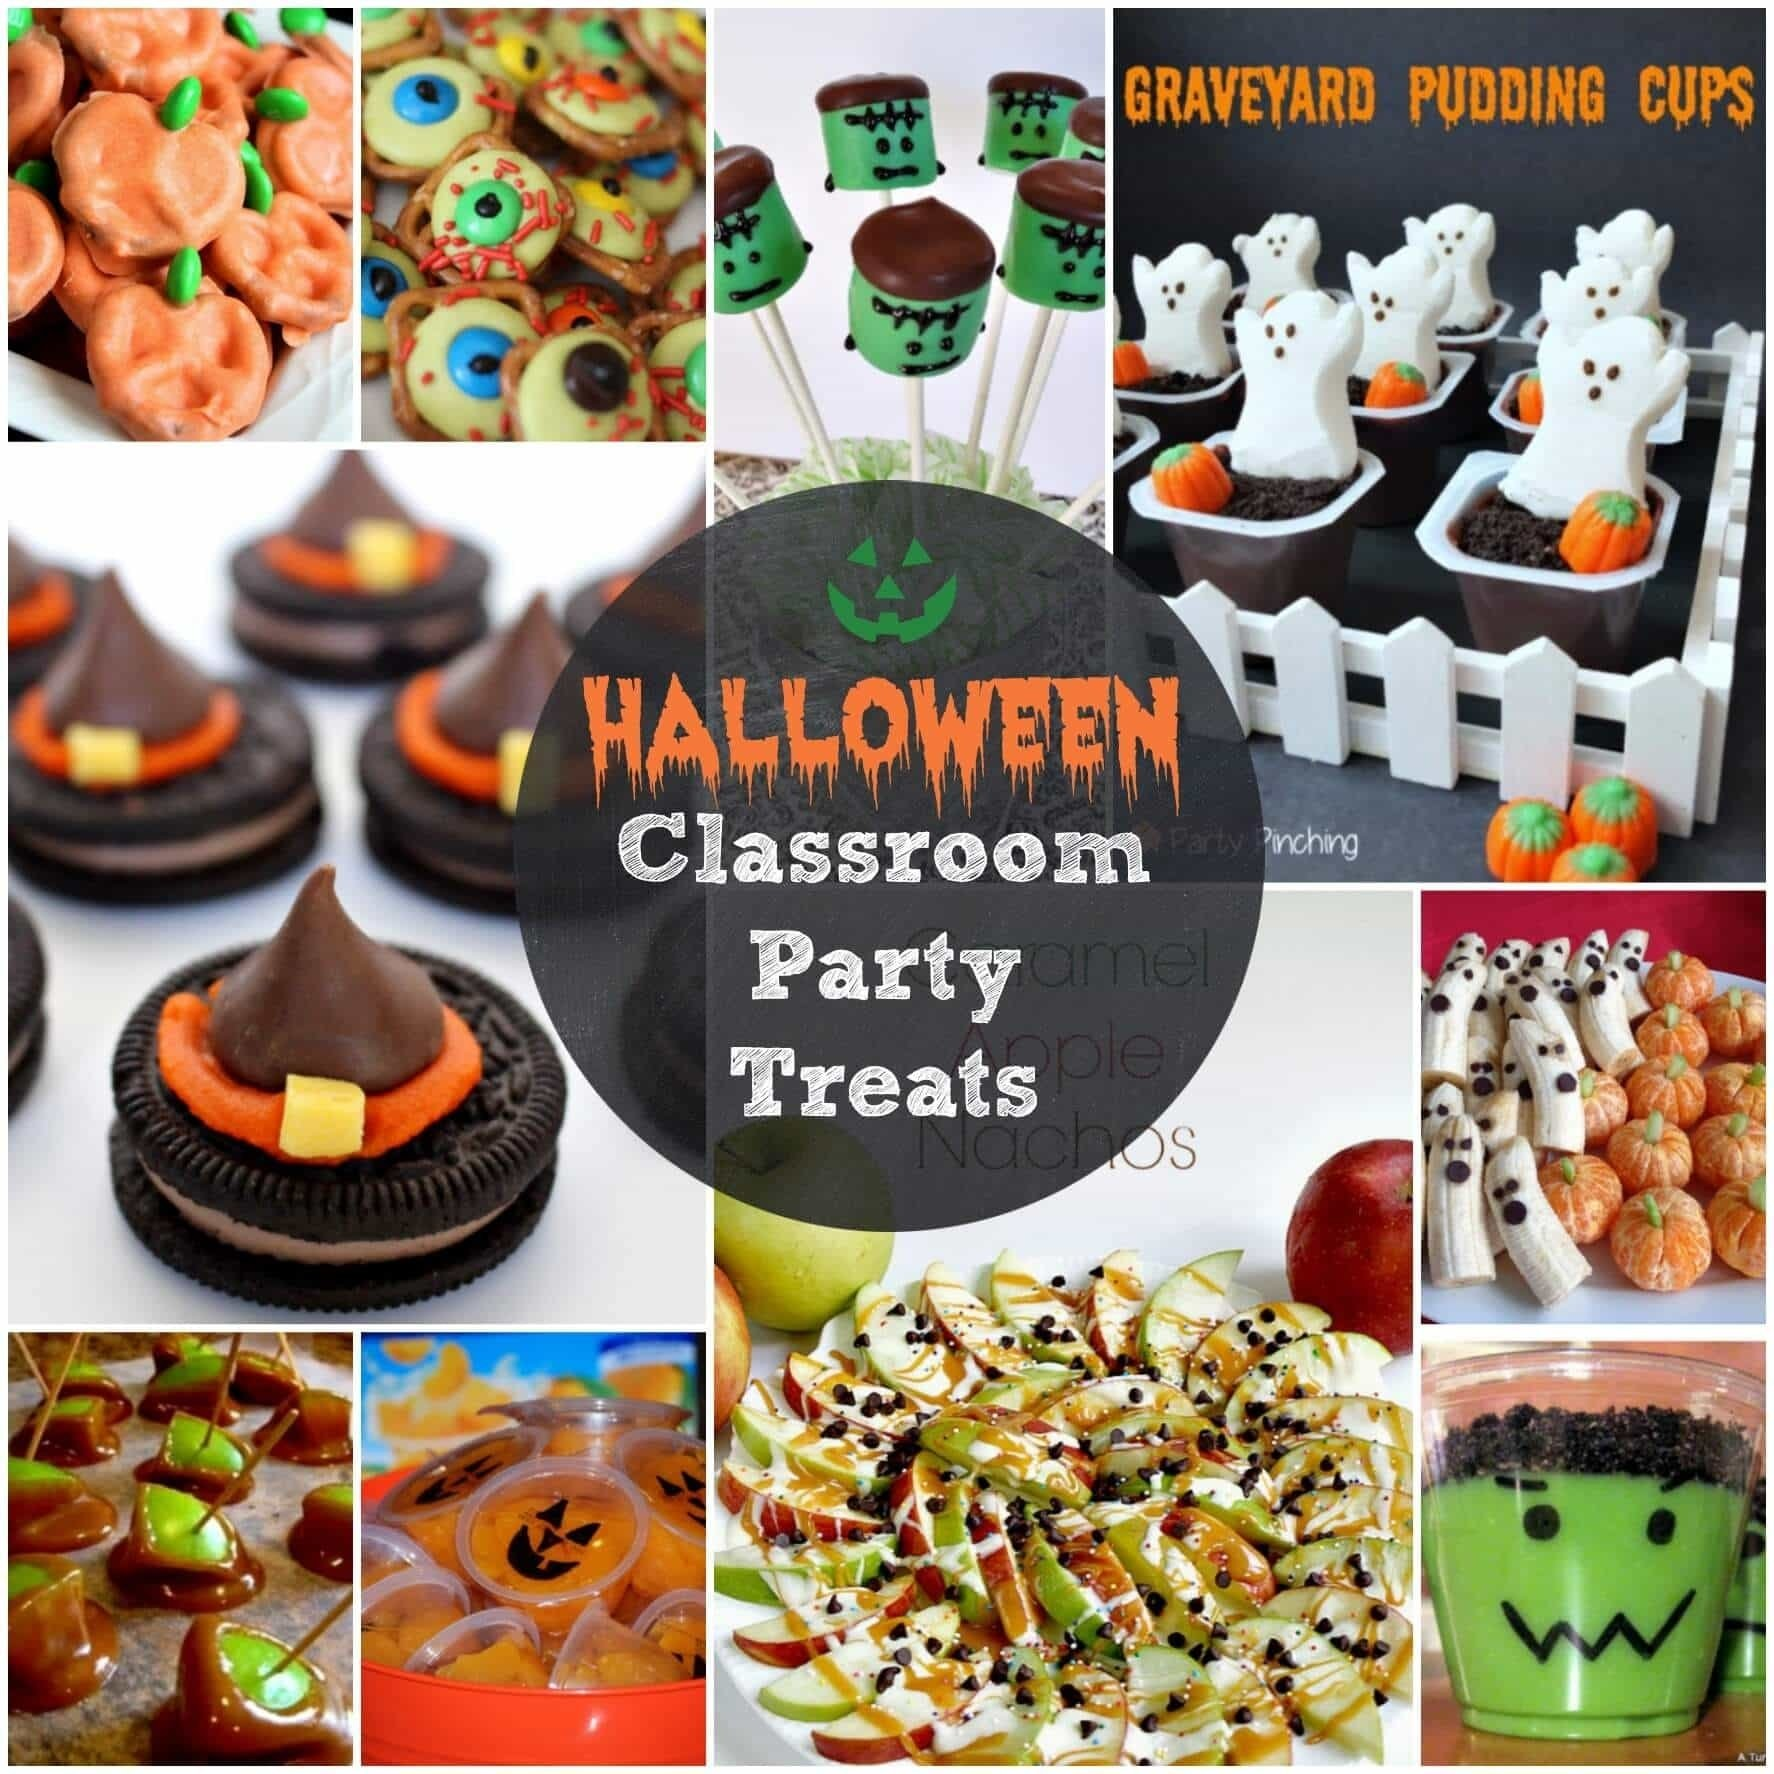 10 Unique Halloween Treat Ideas For School easy halloween treats for your classroom parties or just for fun 2020